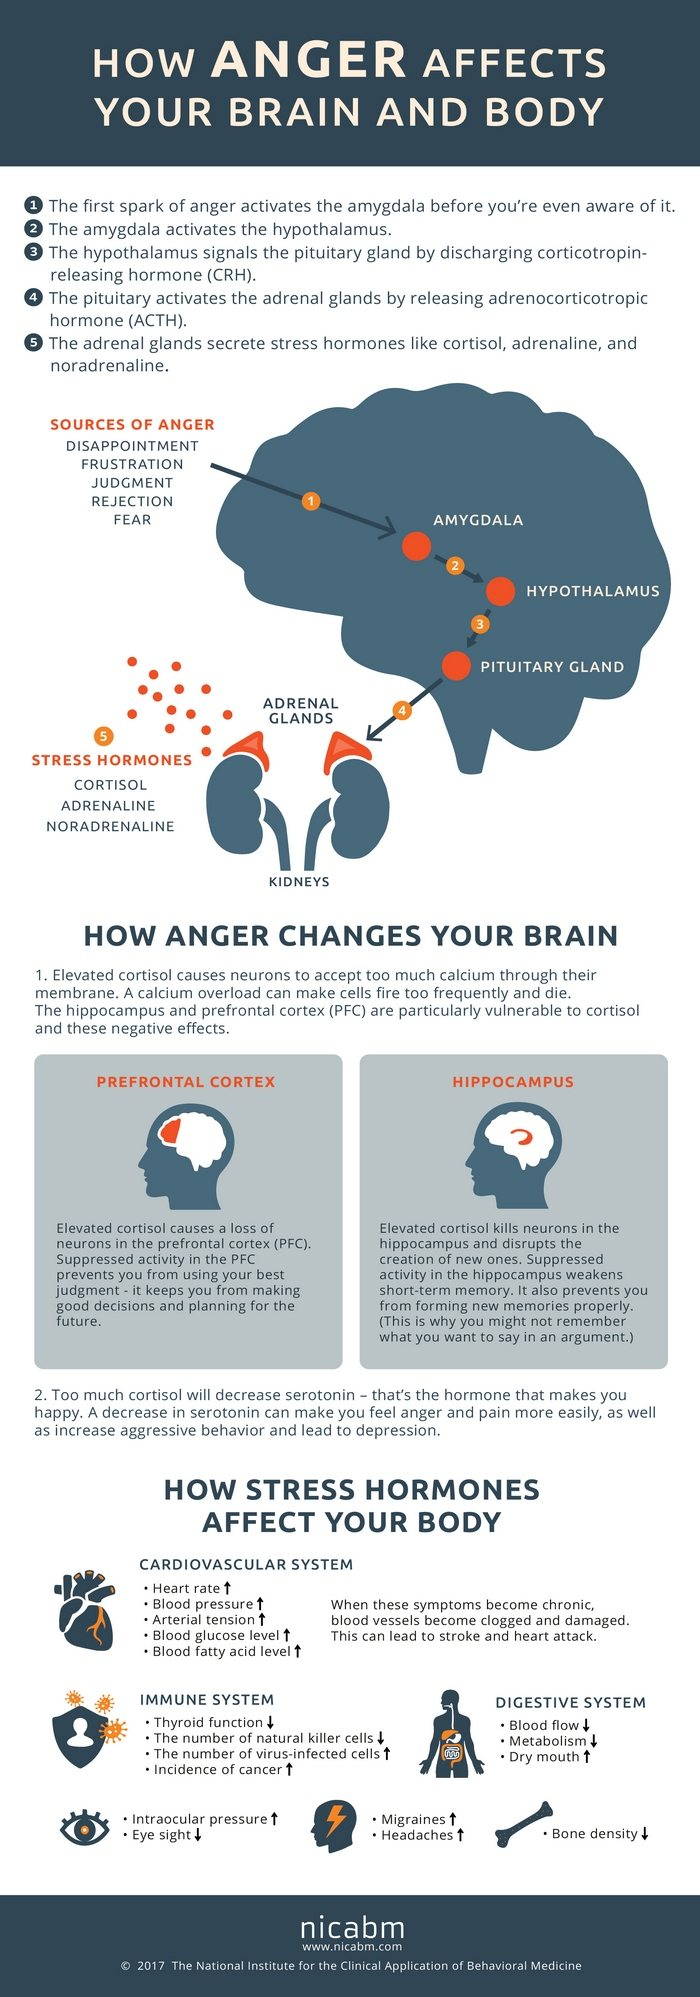 How anger affects your mind and body. Click the image to download a large version of the infographic.)